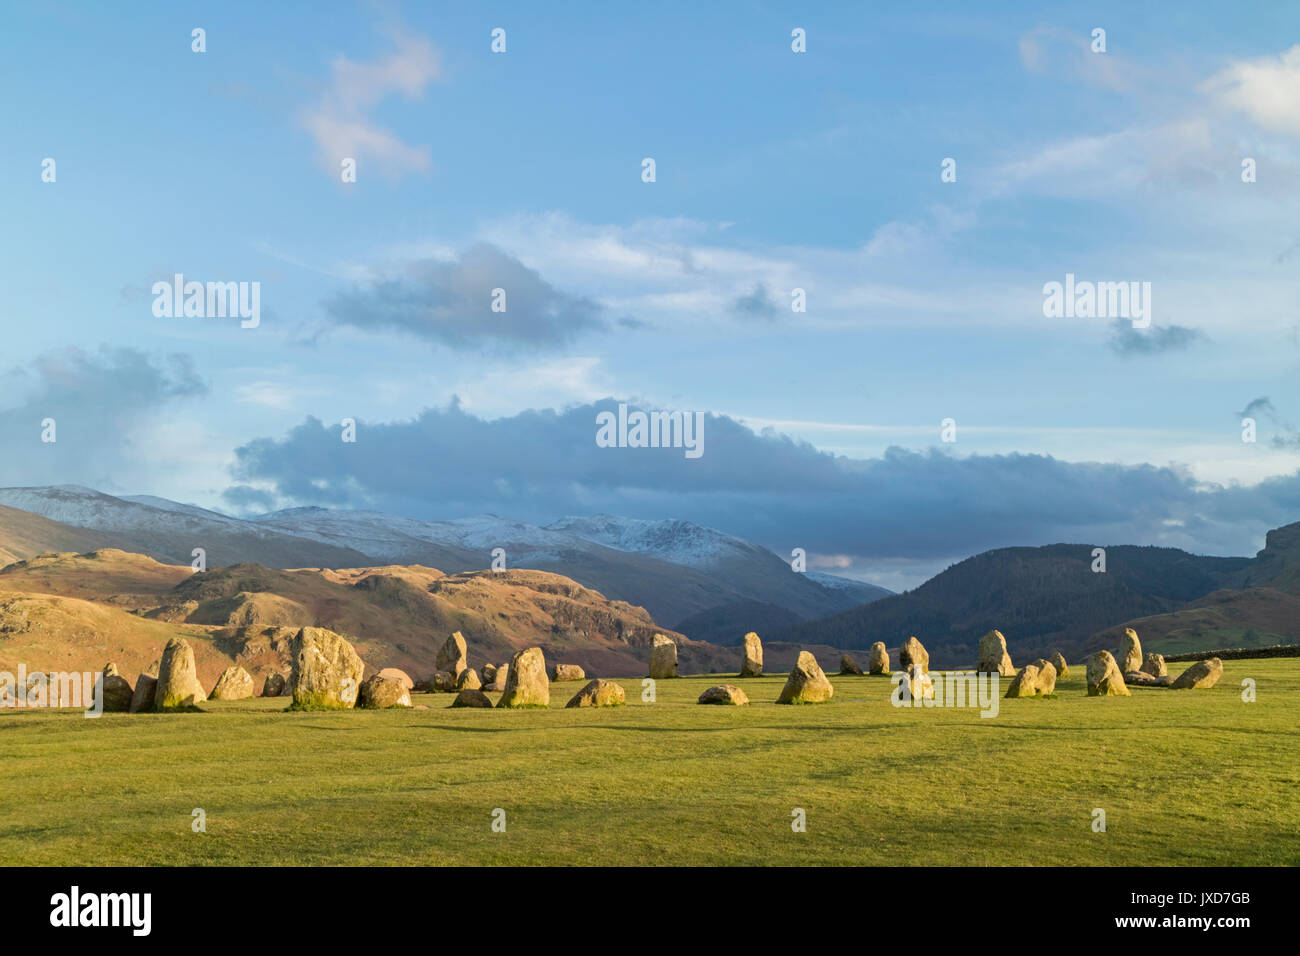 Castlerigg Stone Circle a neolithic monument in the Lake District National Park near Keswick, Cumbria, England, UK - Stock Image